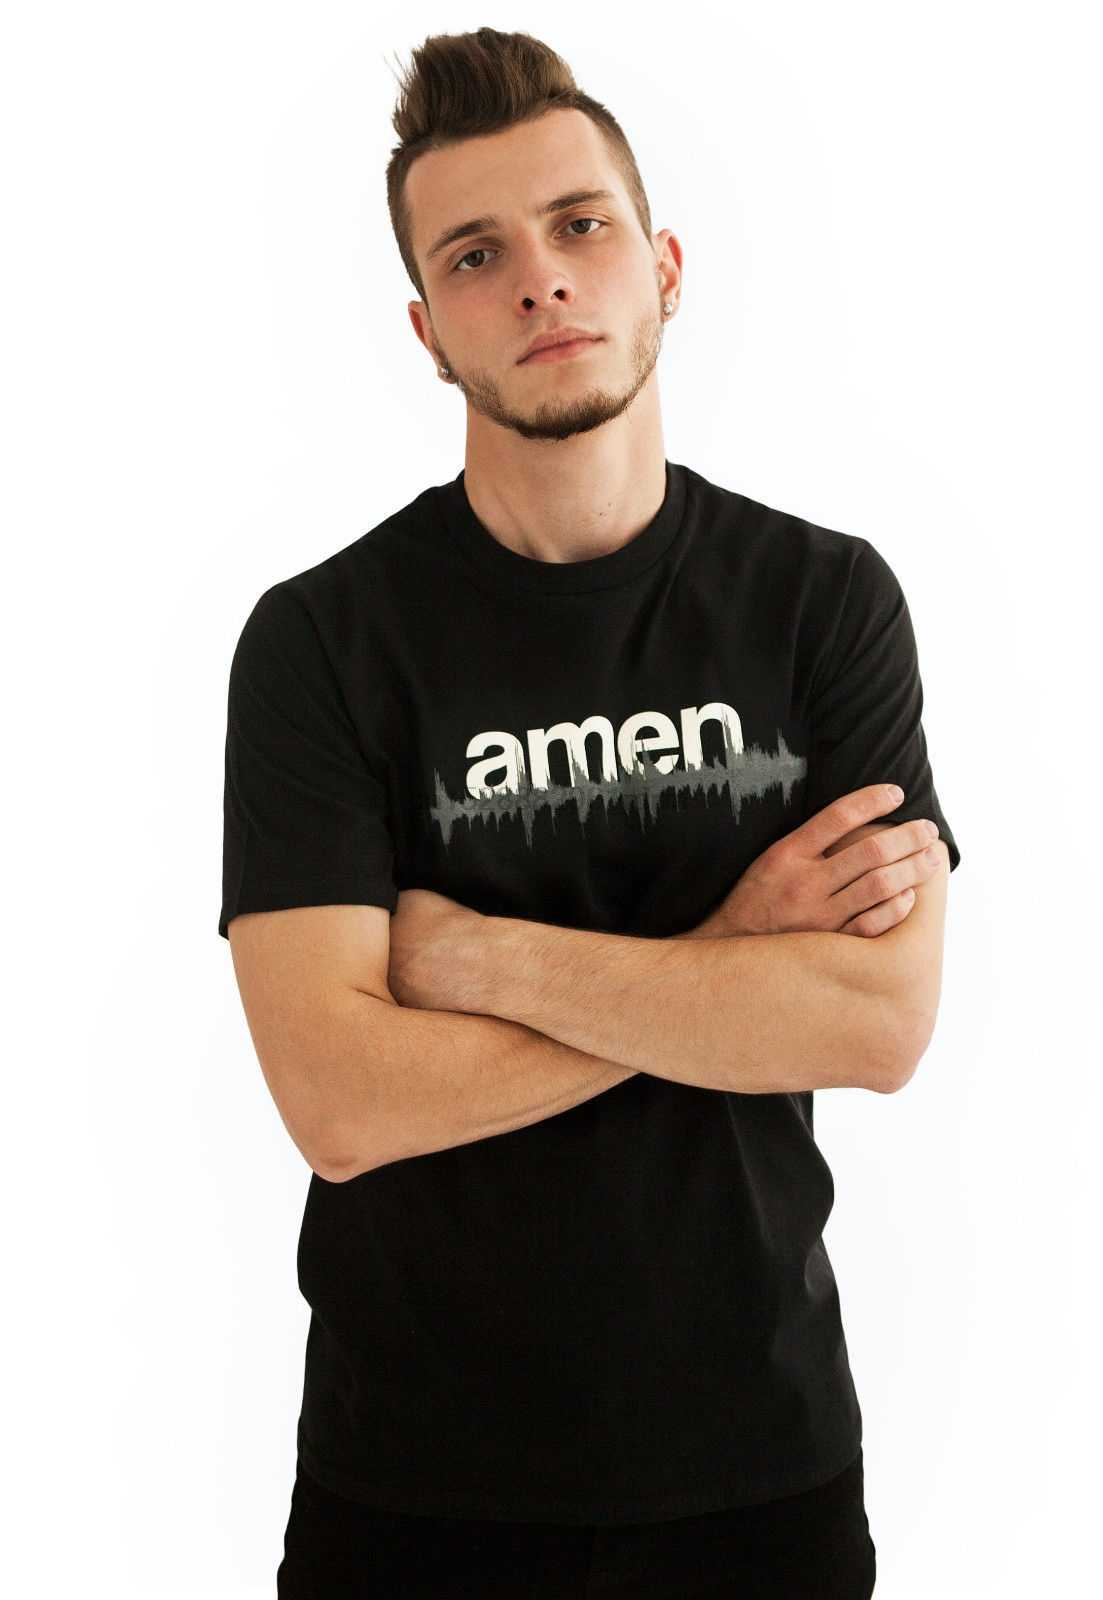 DJ T Shirt - Amen WAV file 808 Drum and Bass  n Synth Music Producer Dubstep tr 100% cotton tee shirt tops wholesale tee